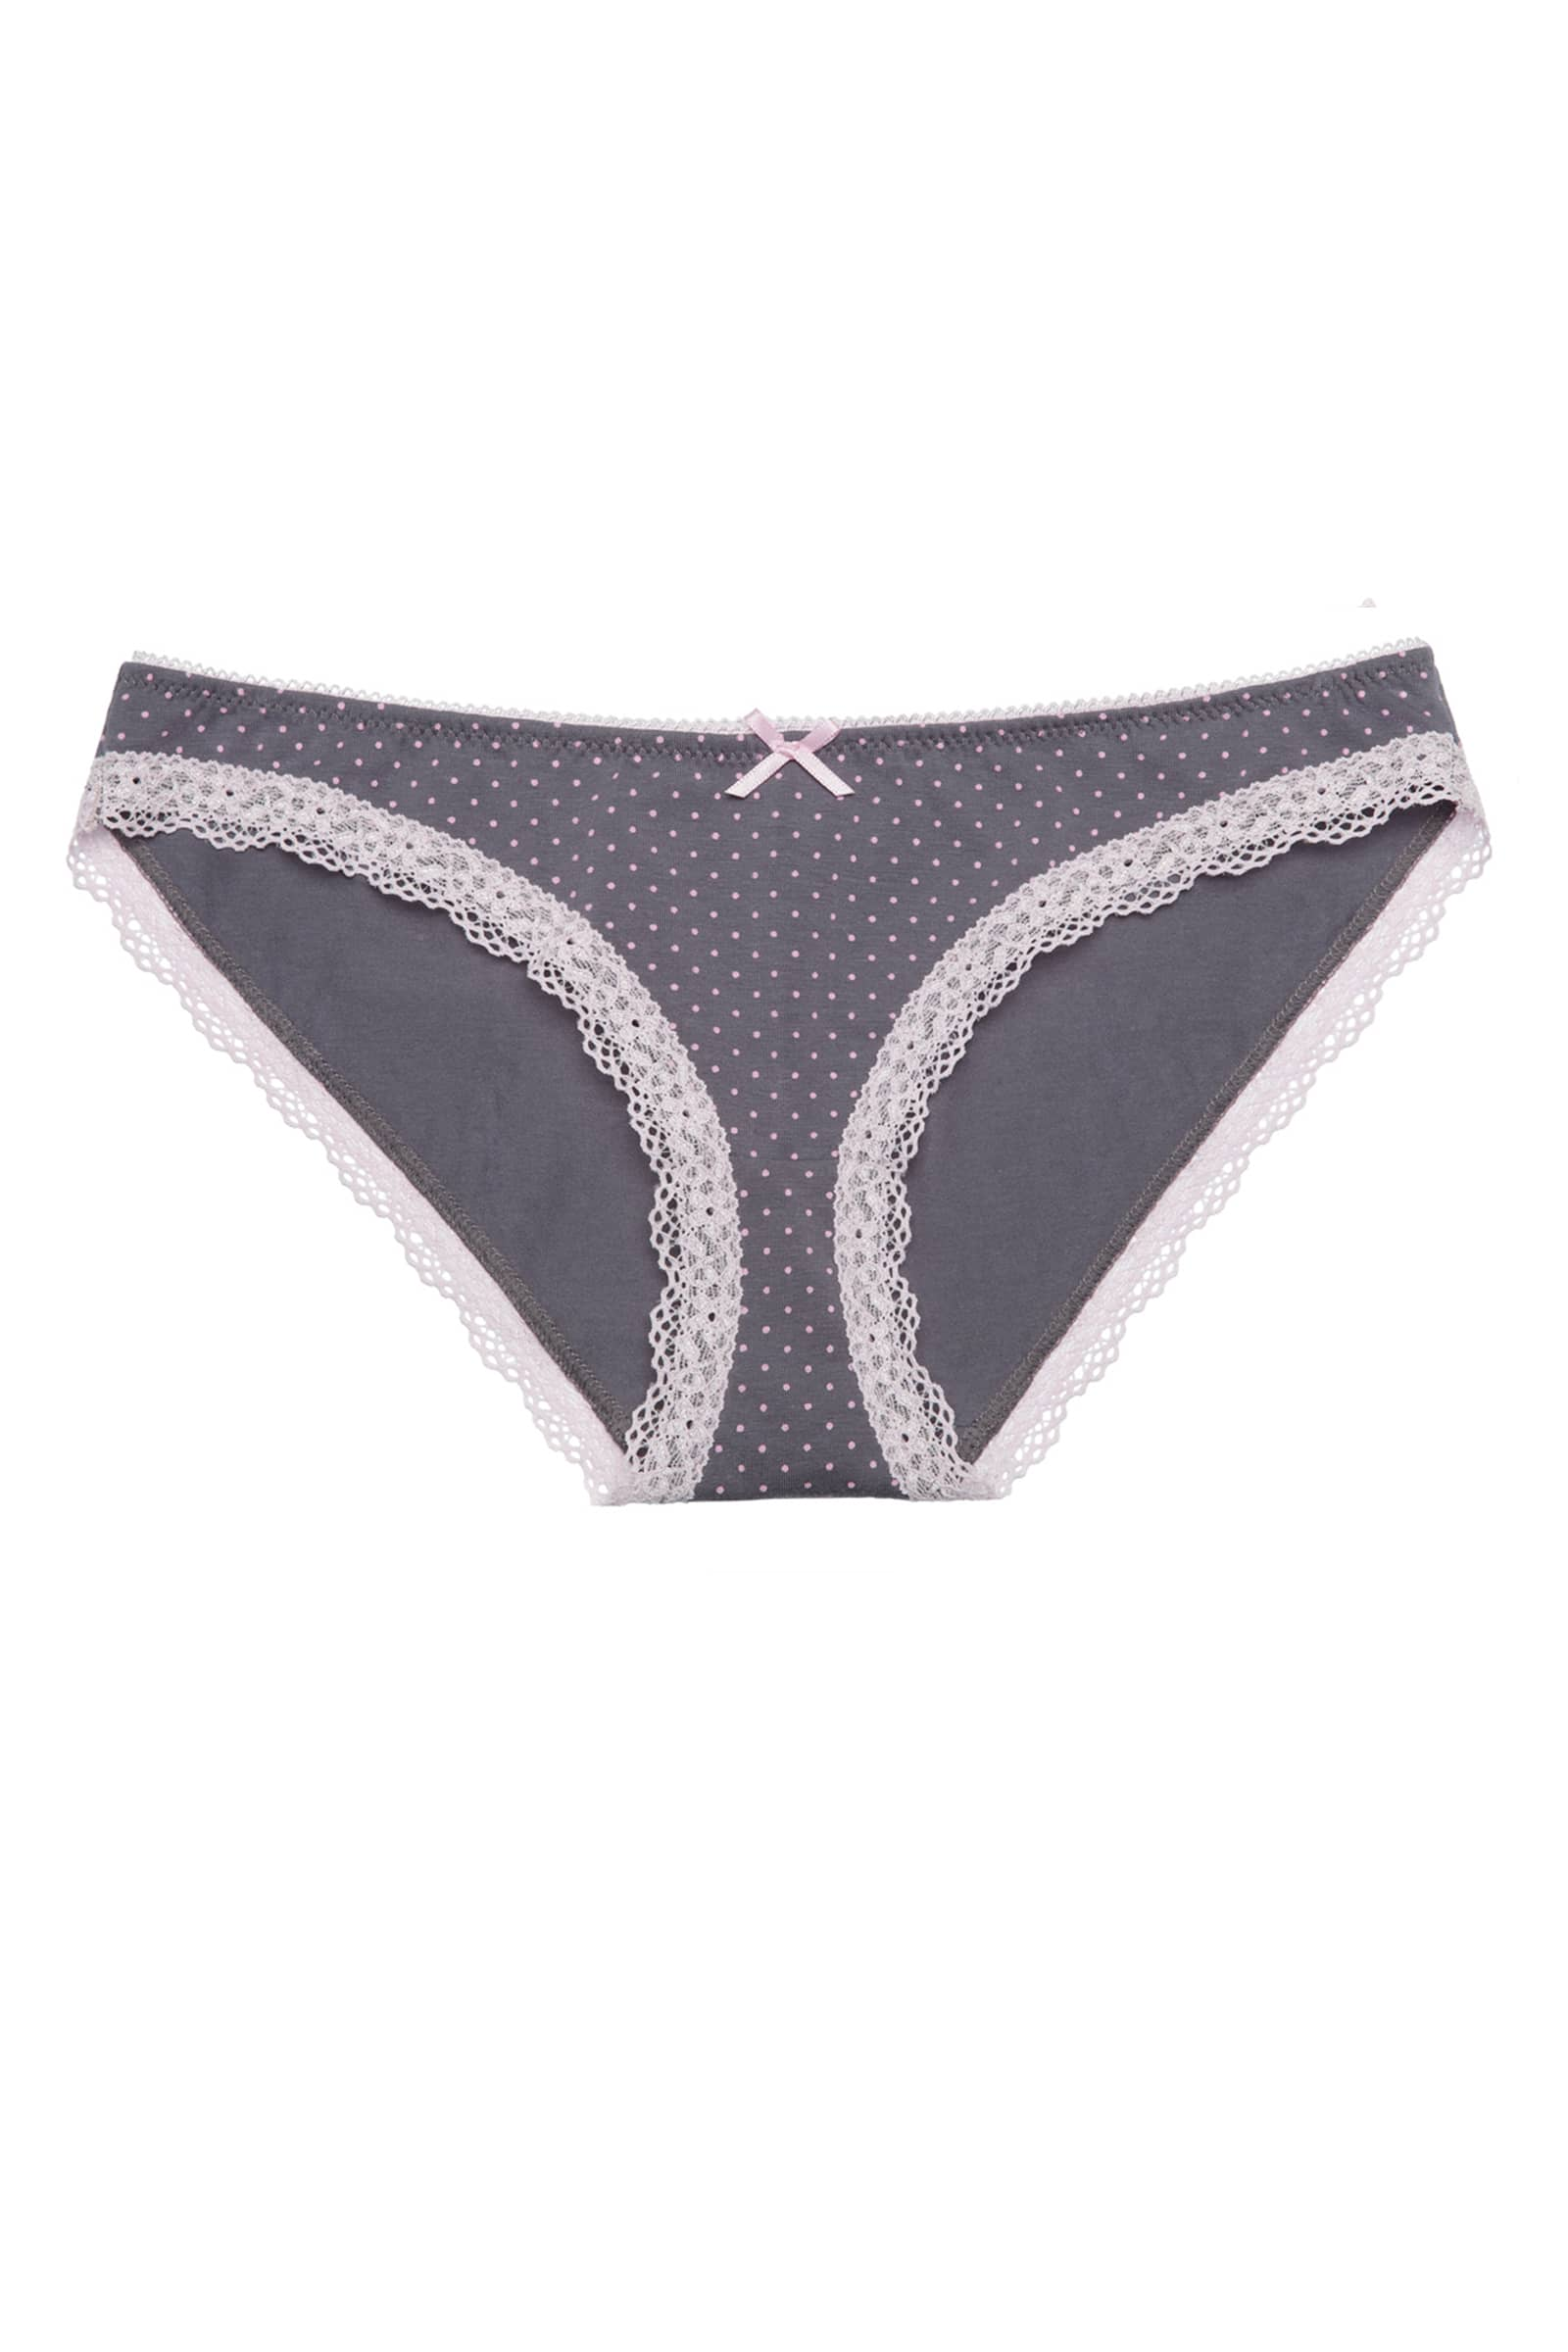 Panties slip — Glory, color: pink-black — picture 1